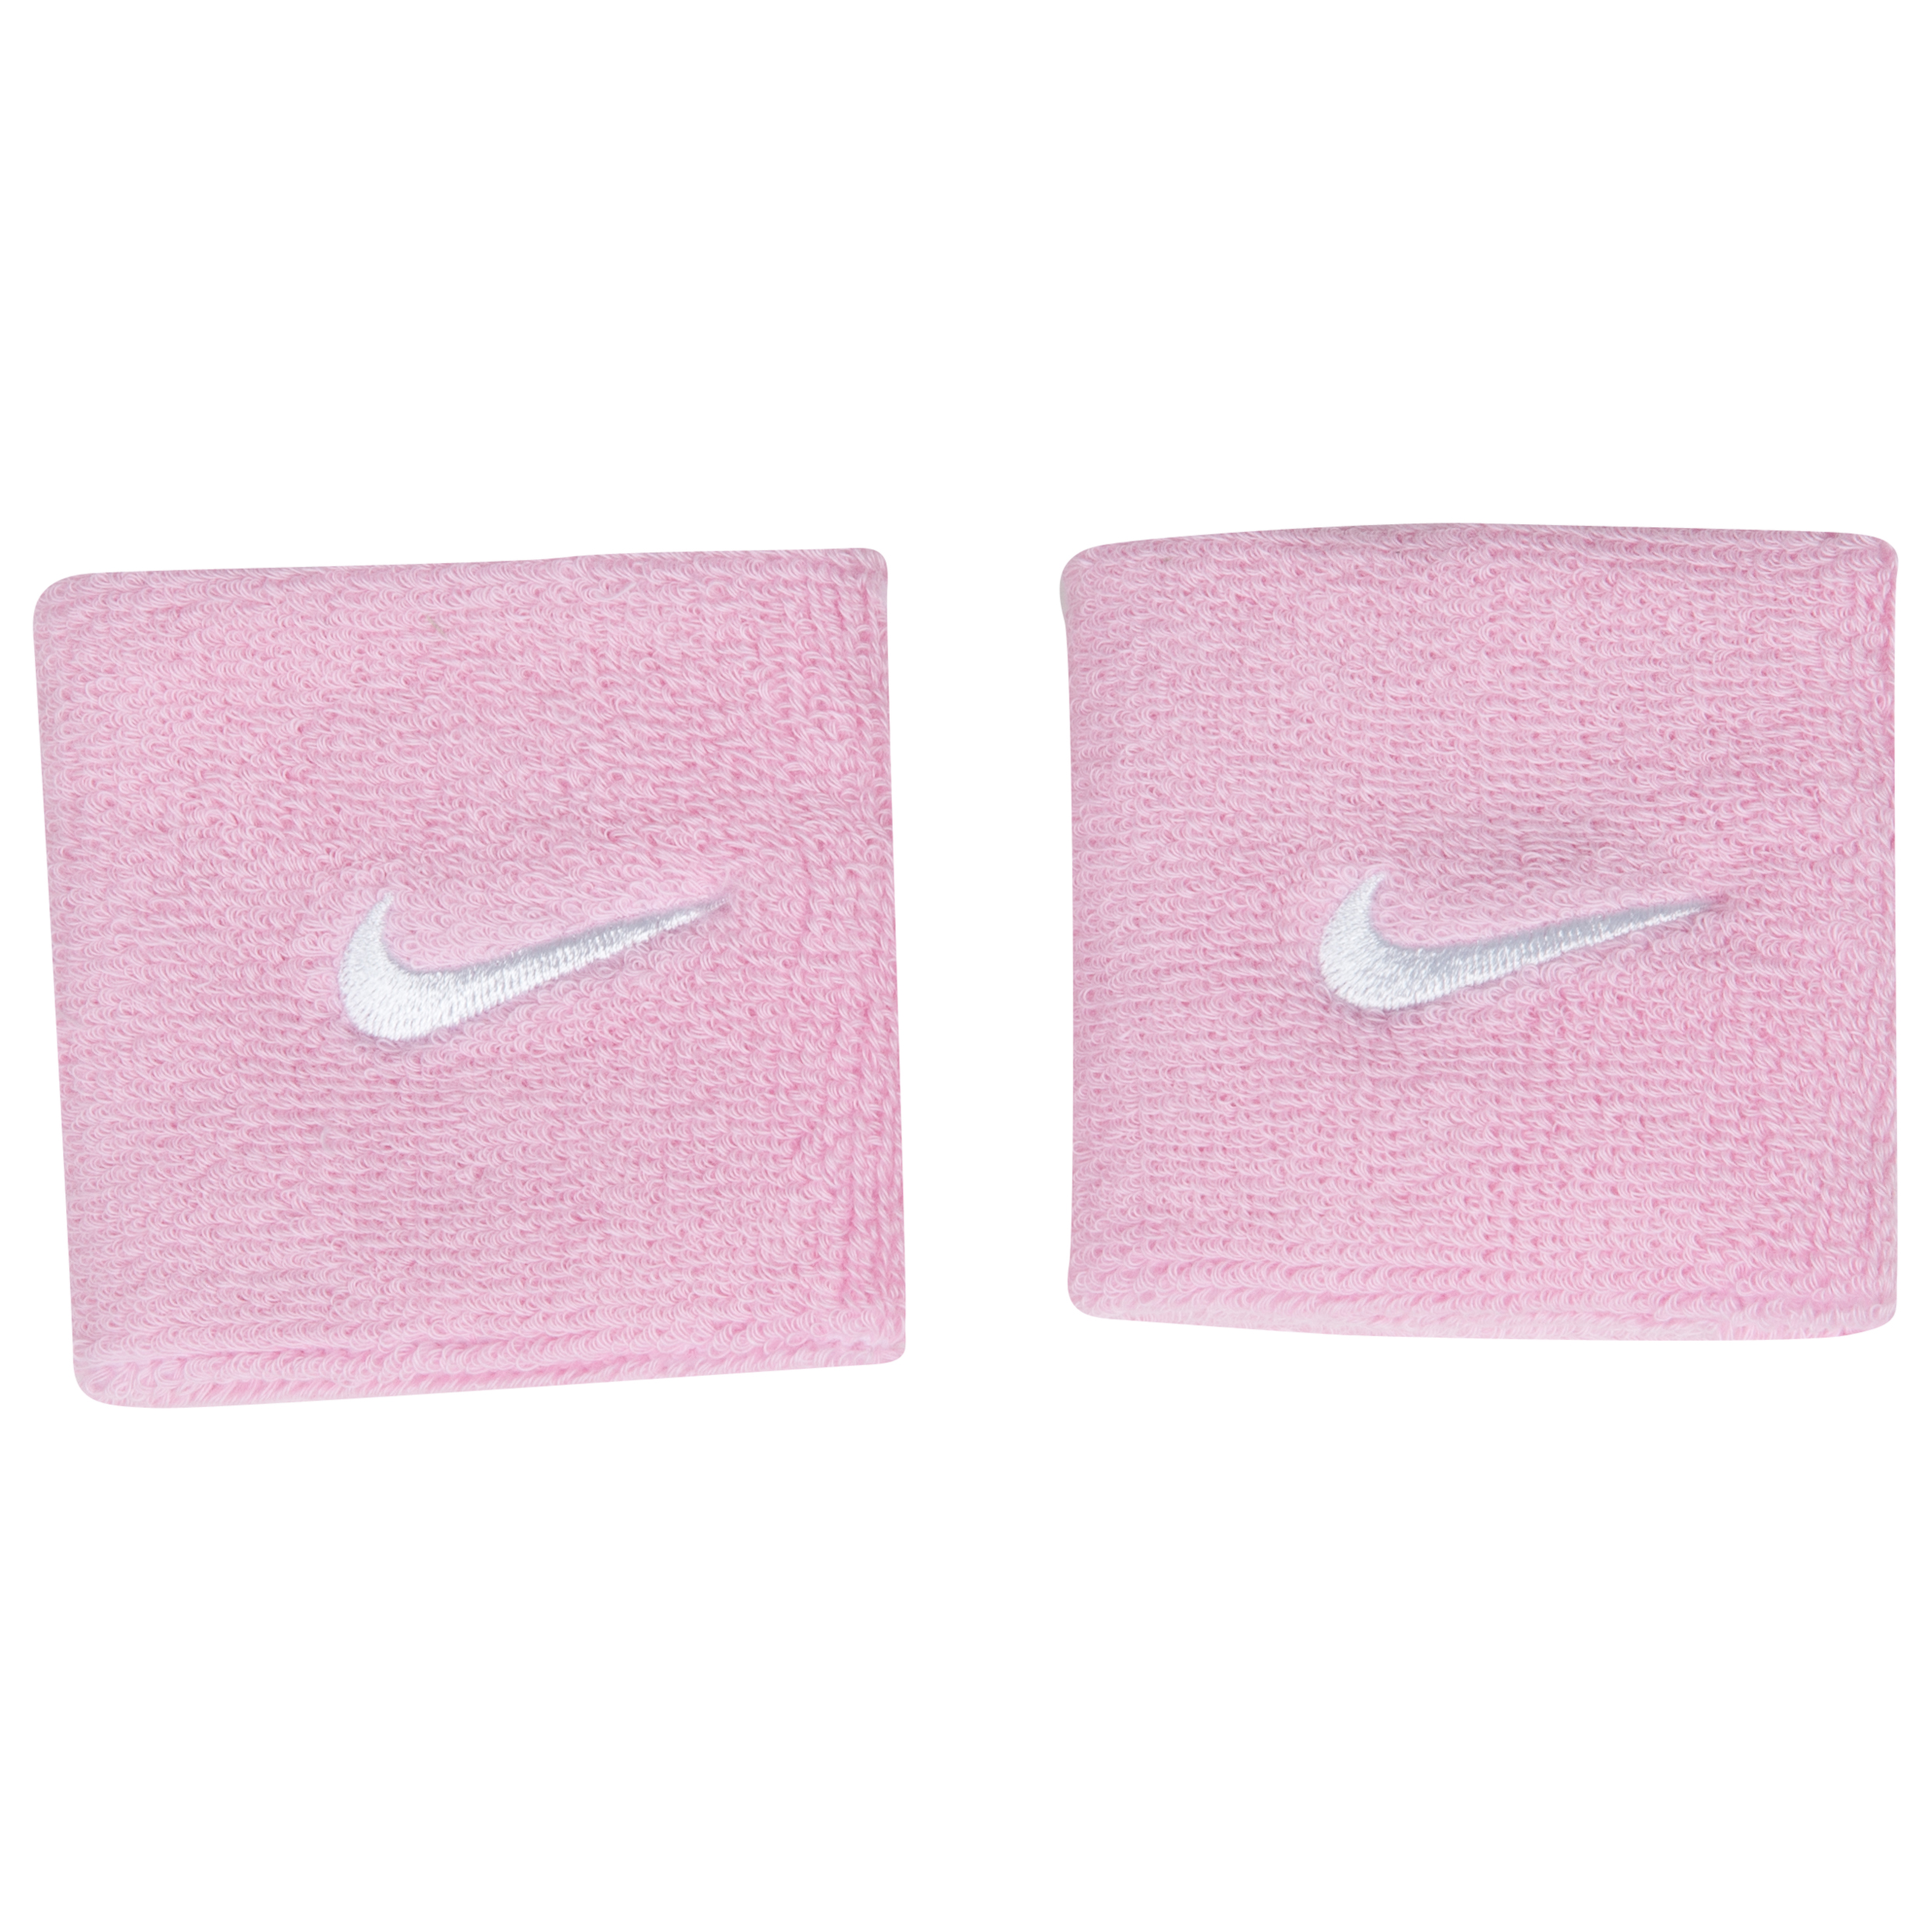 Nike Swoosh Wristbands - Perfect Pink/White